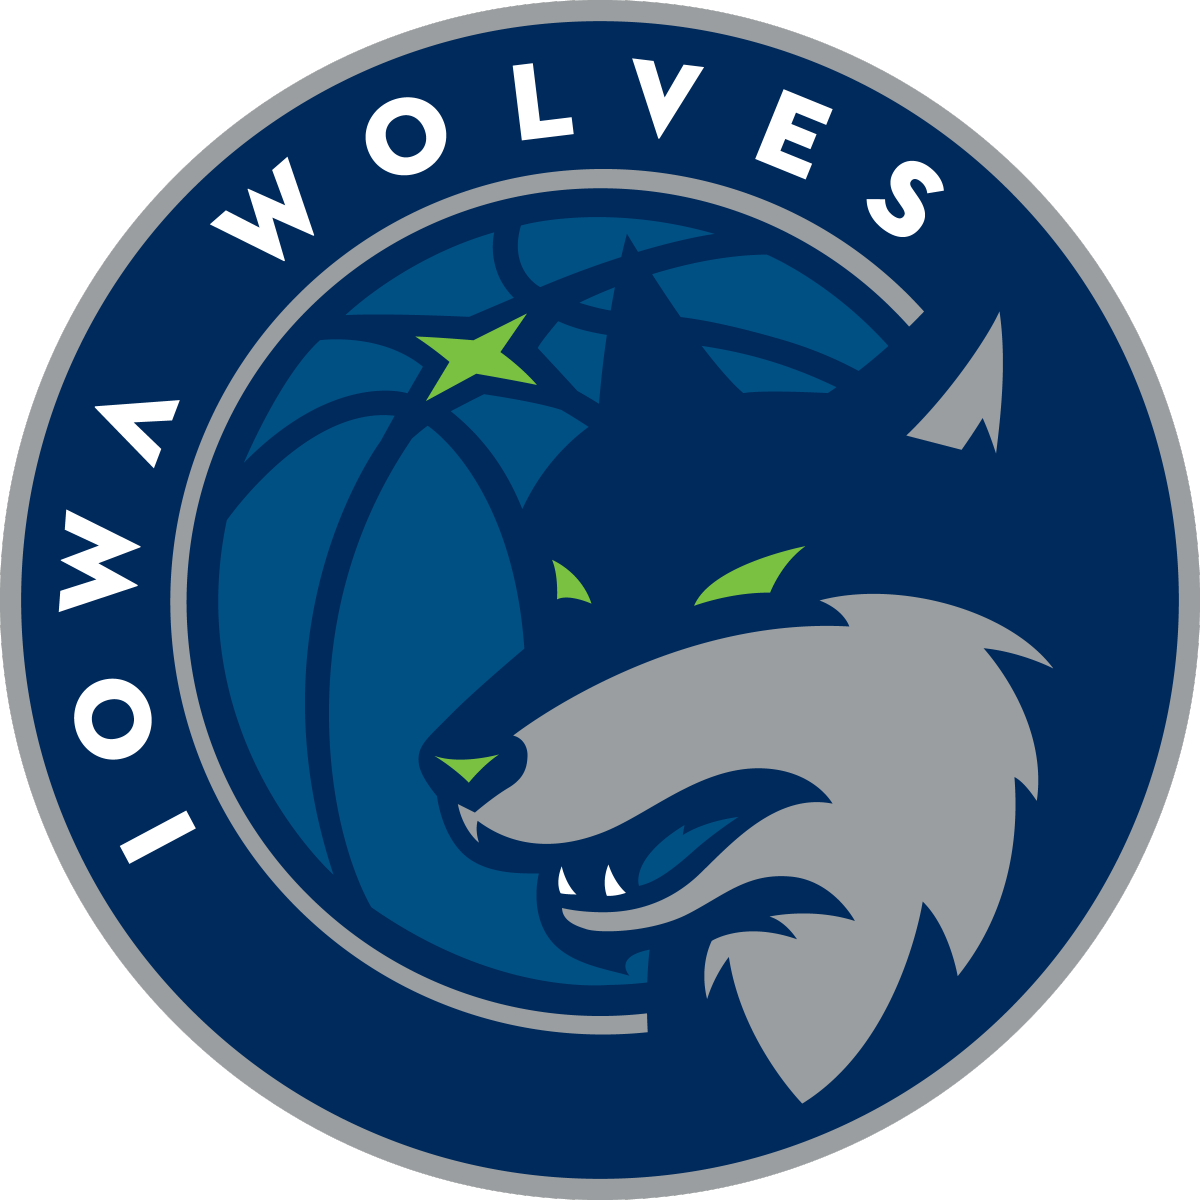 Wolves clipart basketball. Iowa primary logo illustration